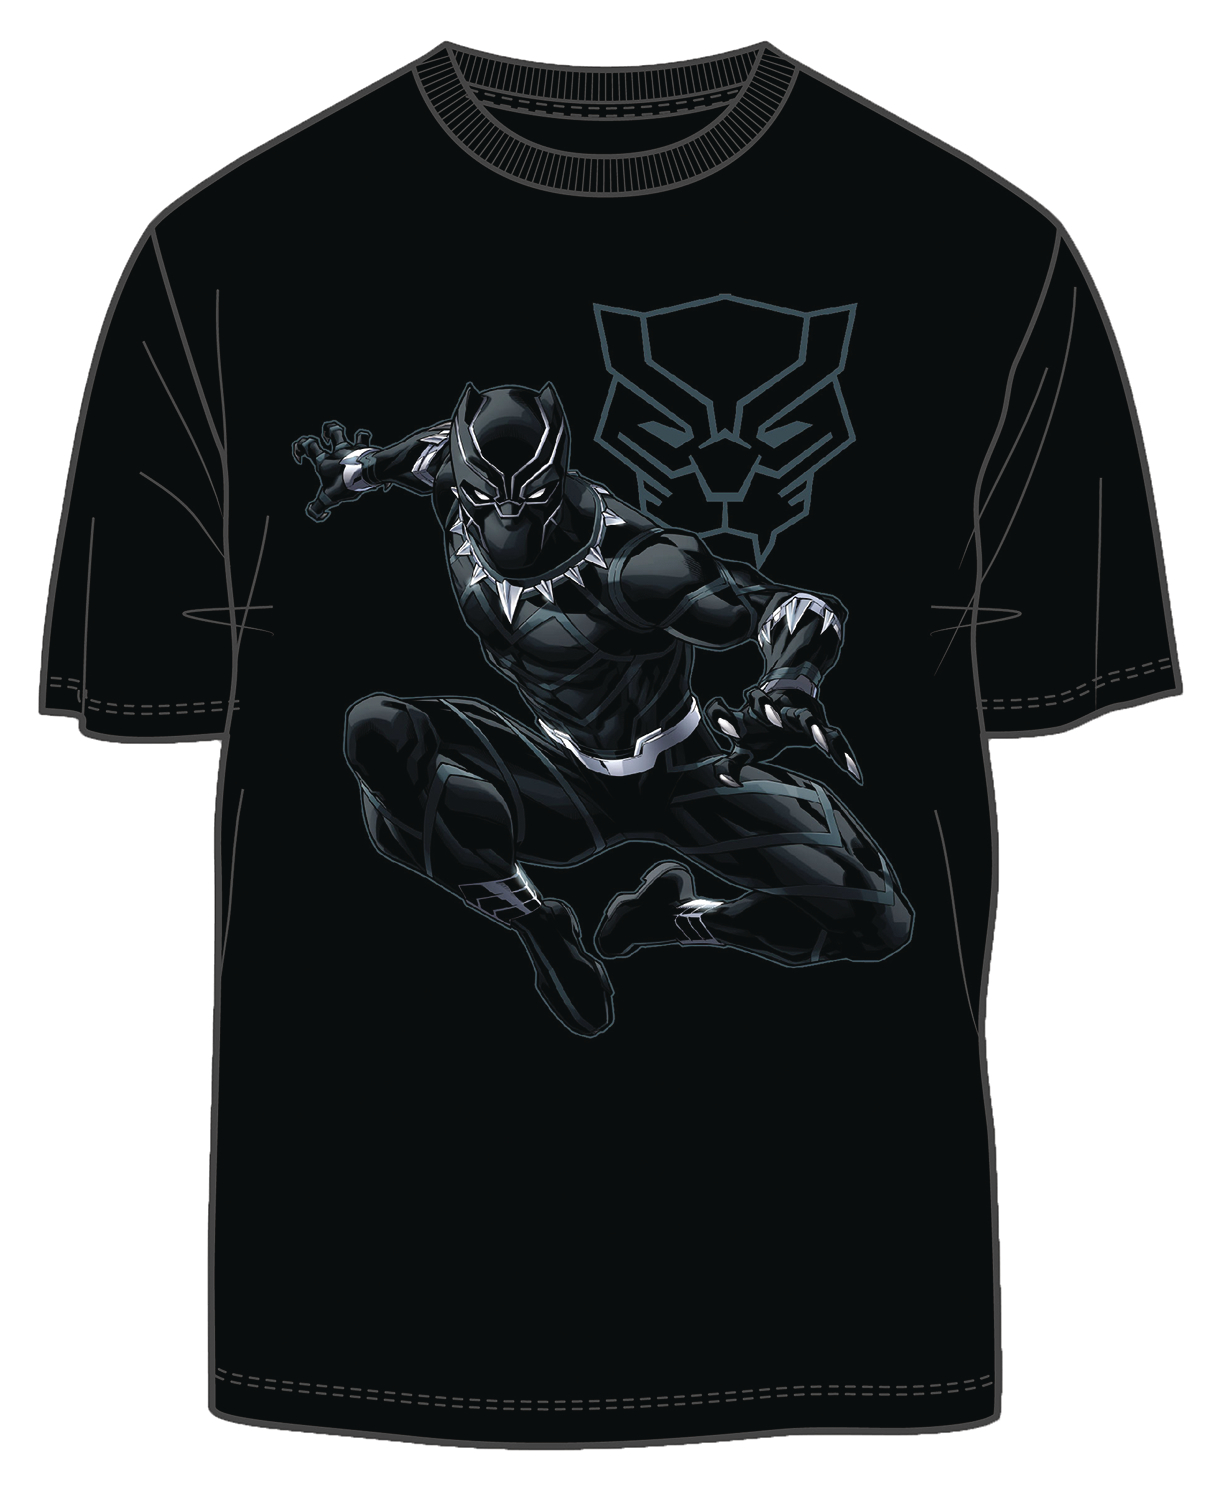 BLACK PANTHER JUNGLE LORD PX BLACK T/S XL